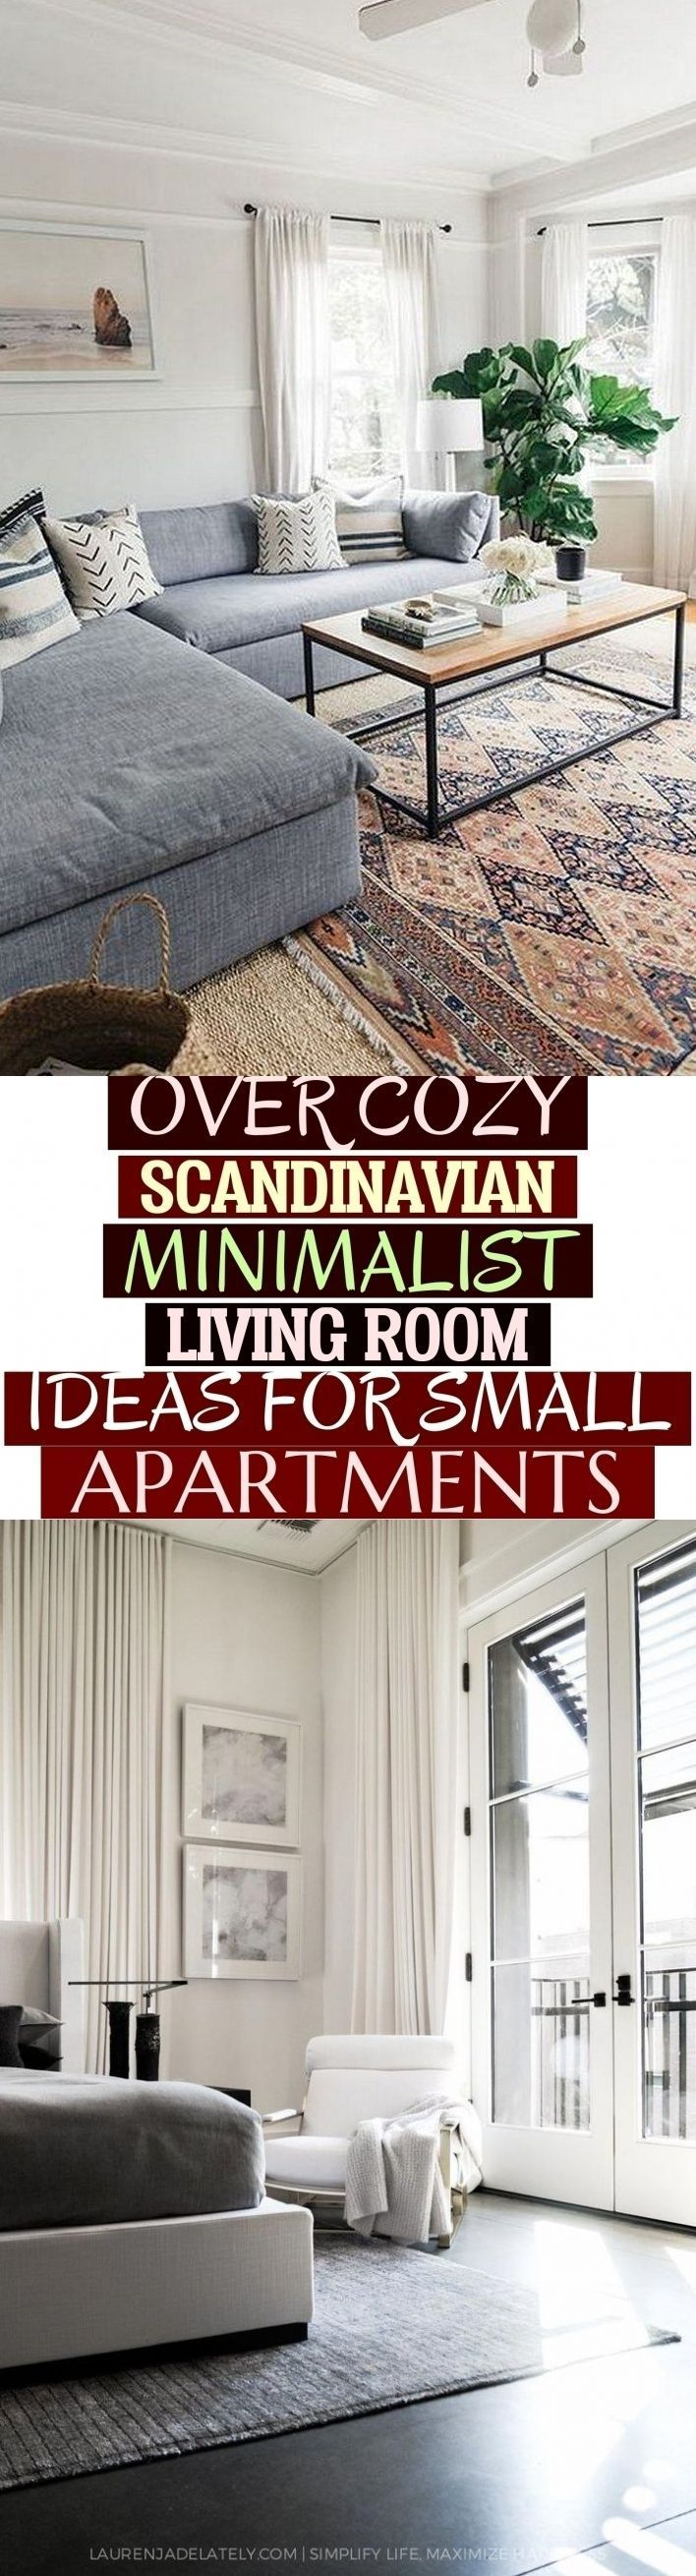 Over Cozy Scandinavian Minimalist Living Room Ideas For Small Apartments ; #apar#designideas #designinspiration #designlovers #designersaree #designsponge #designersarees #designbuild #designersuits #fashionmuslim #scandinaviandesign #industrialdesign #nailsdesign #nailartist